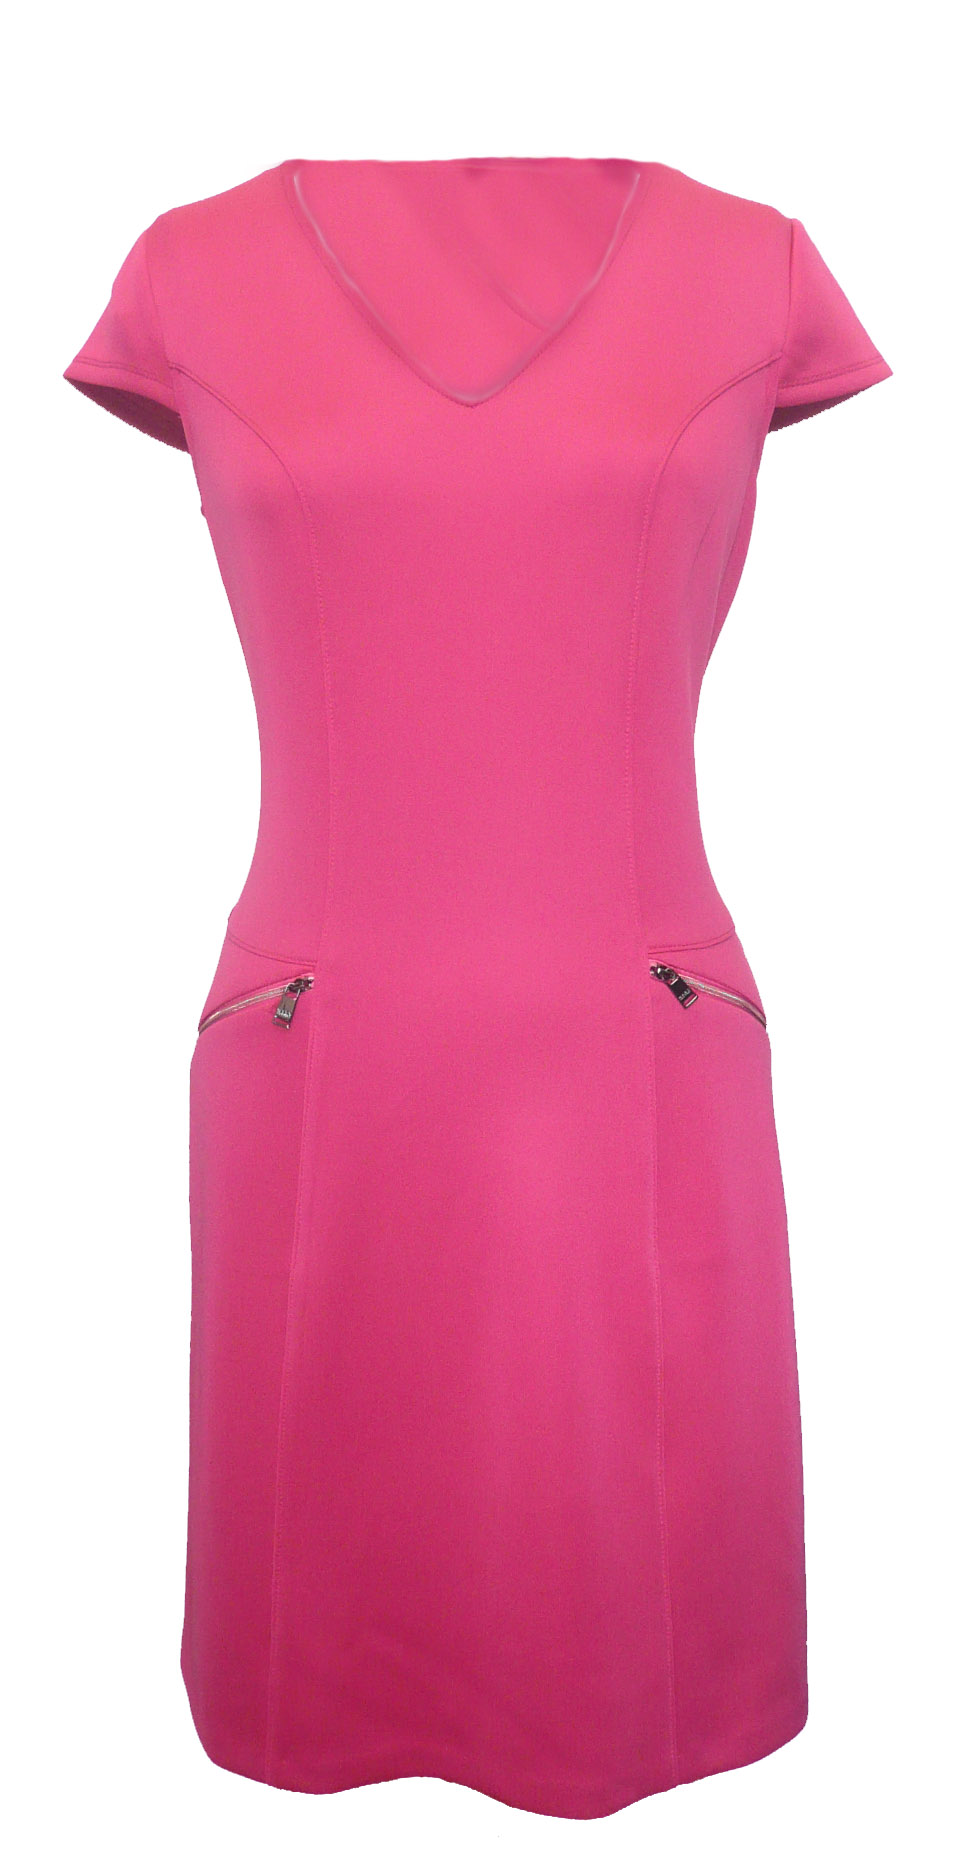 drs fuschia v neck.jpg